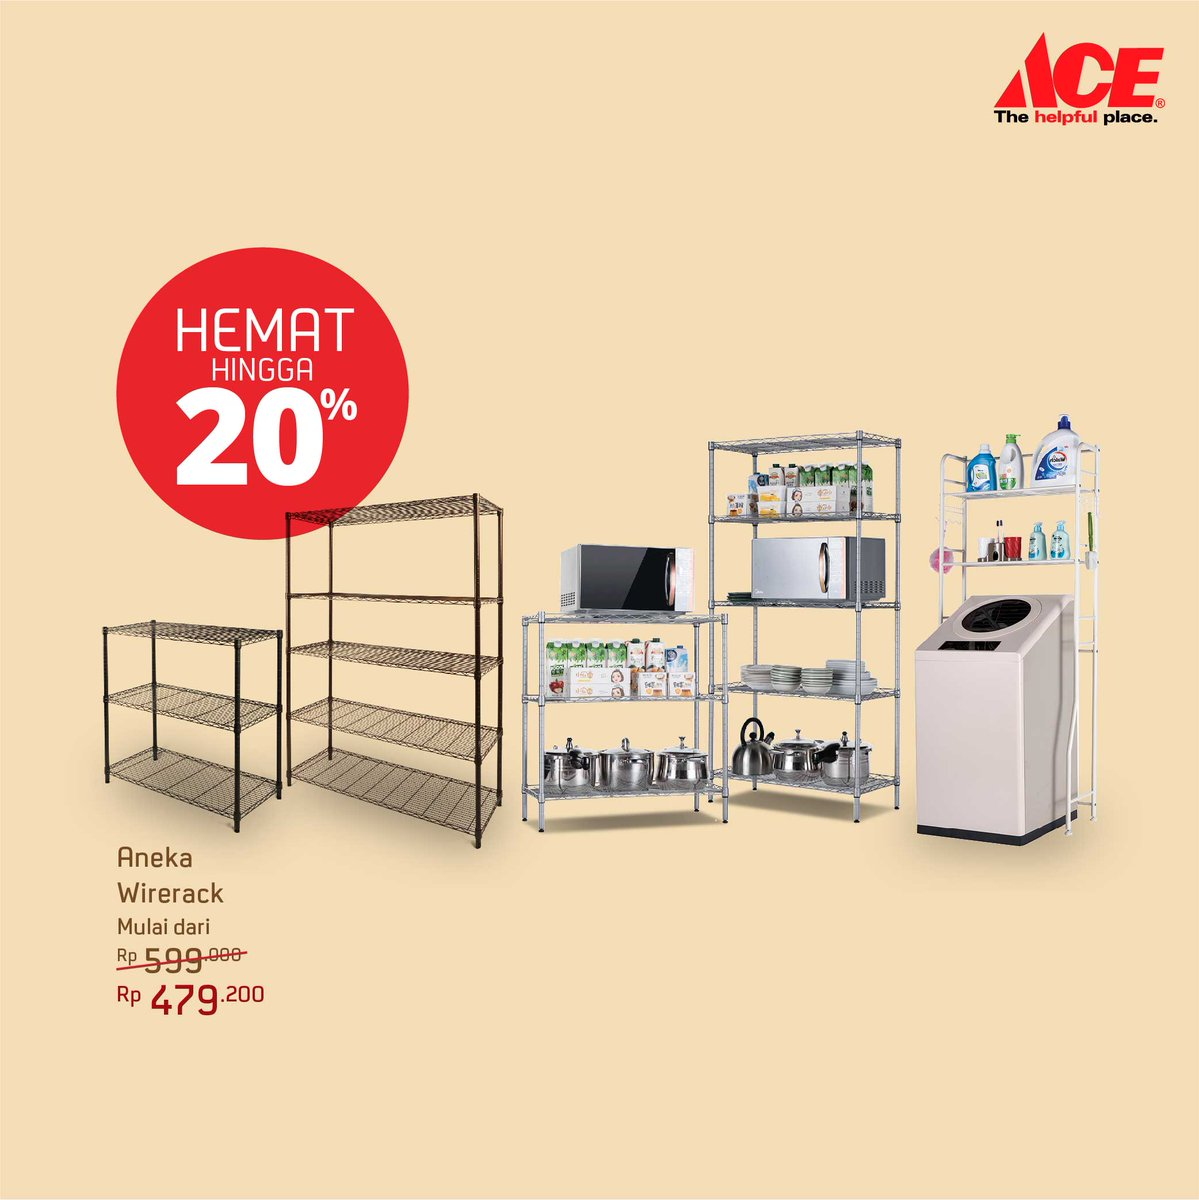 AceHardware - Promo Diskon s.d 20% Aneka Wirerack Krisbow dan Masterspace